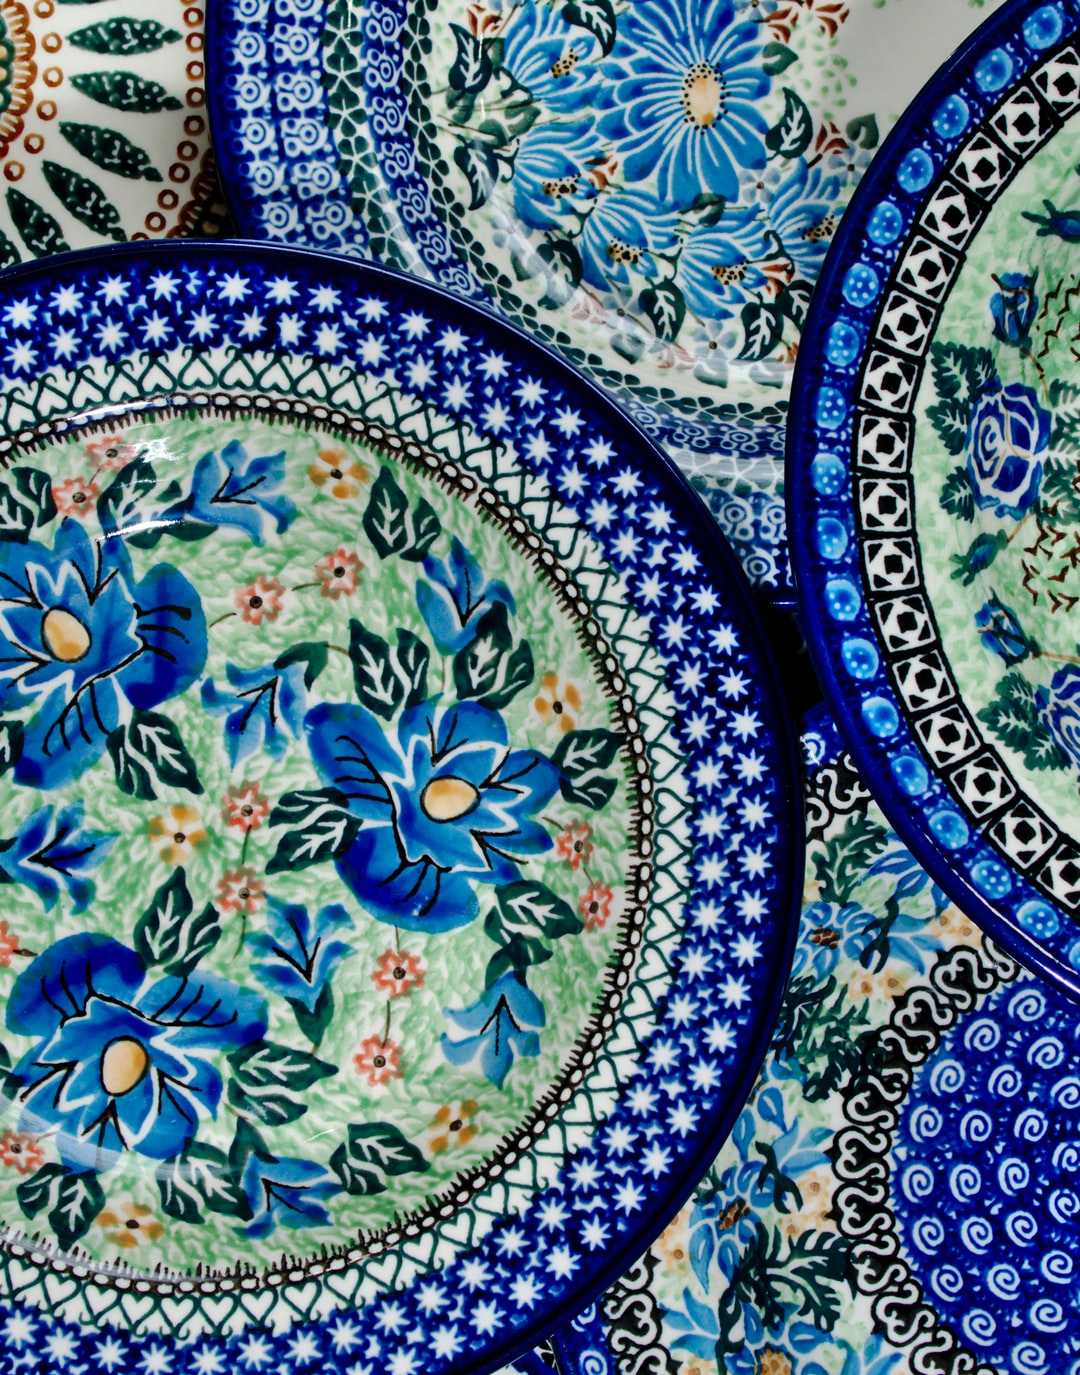 Ornate Bowls and Plates